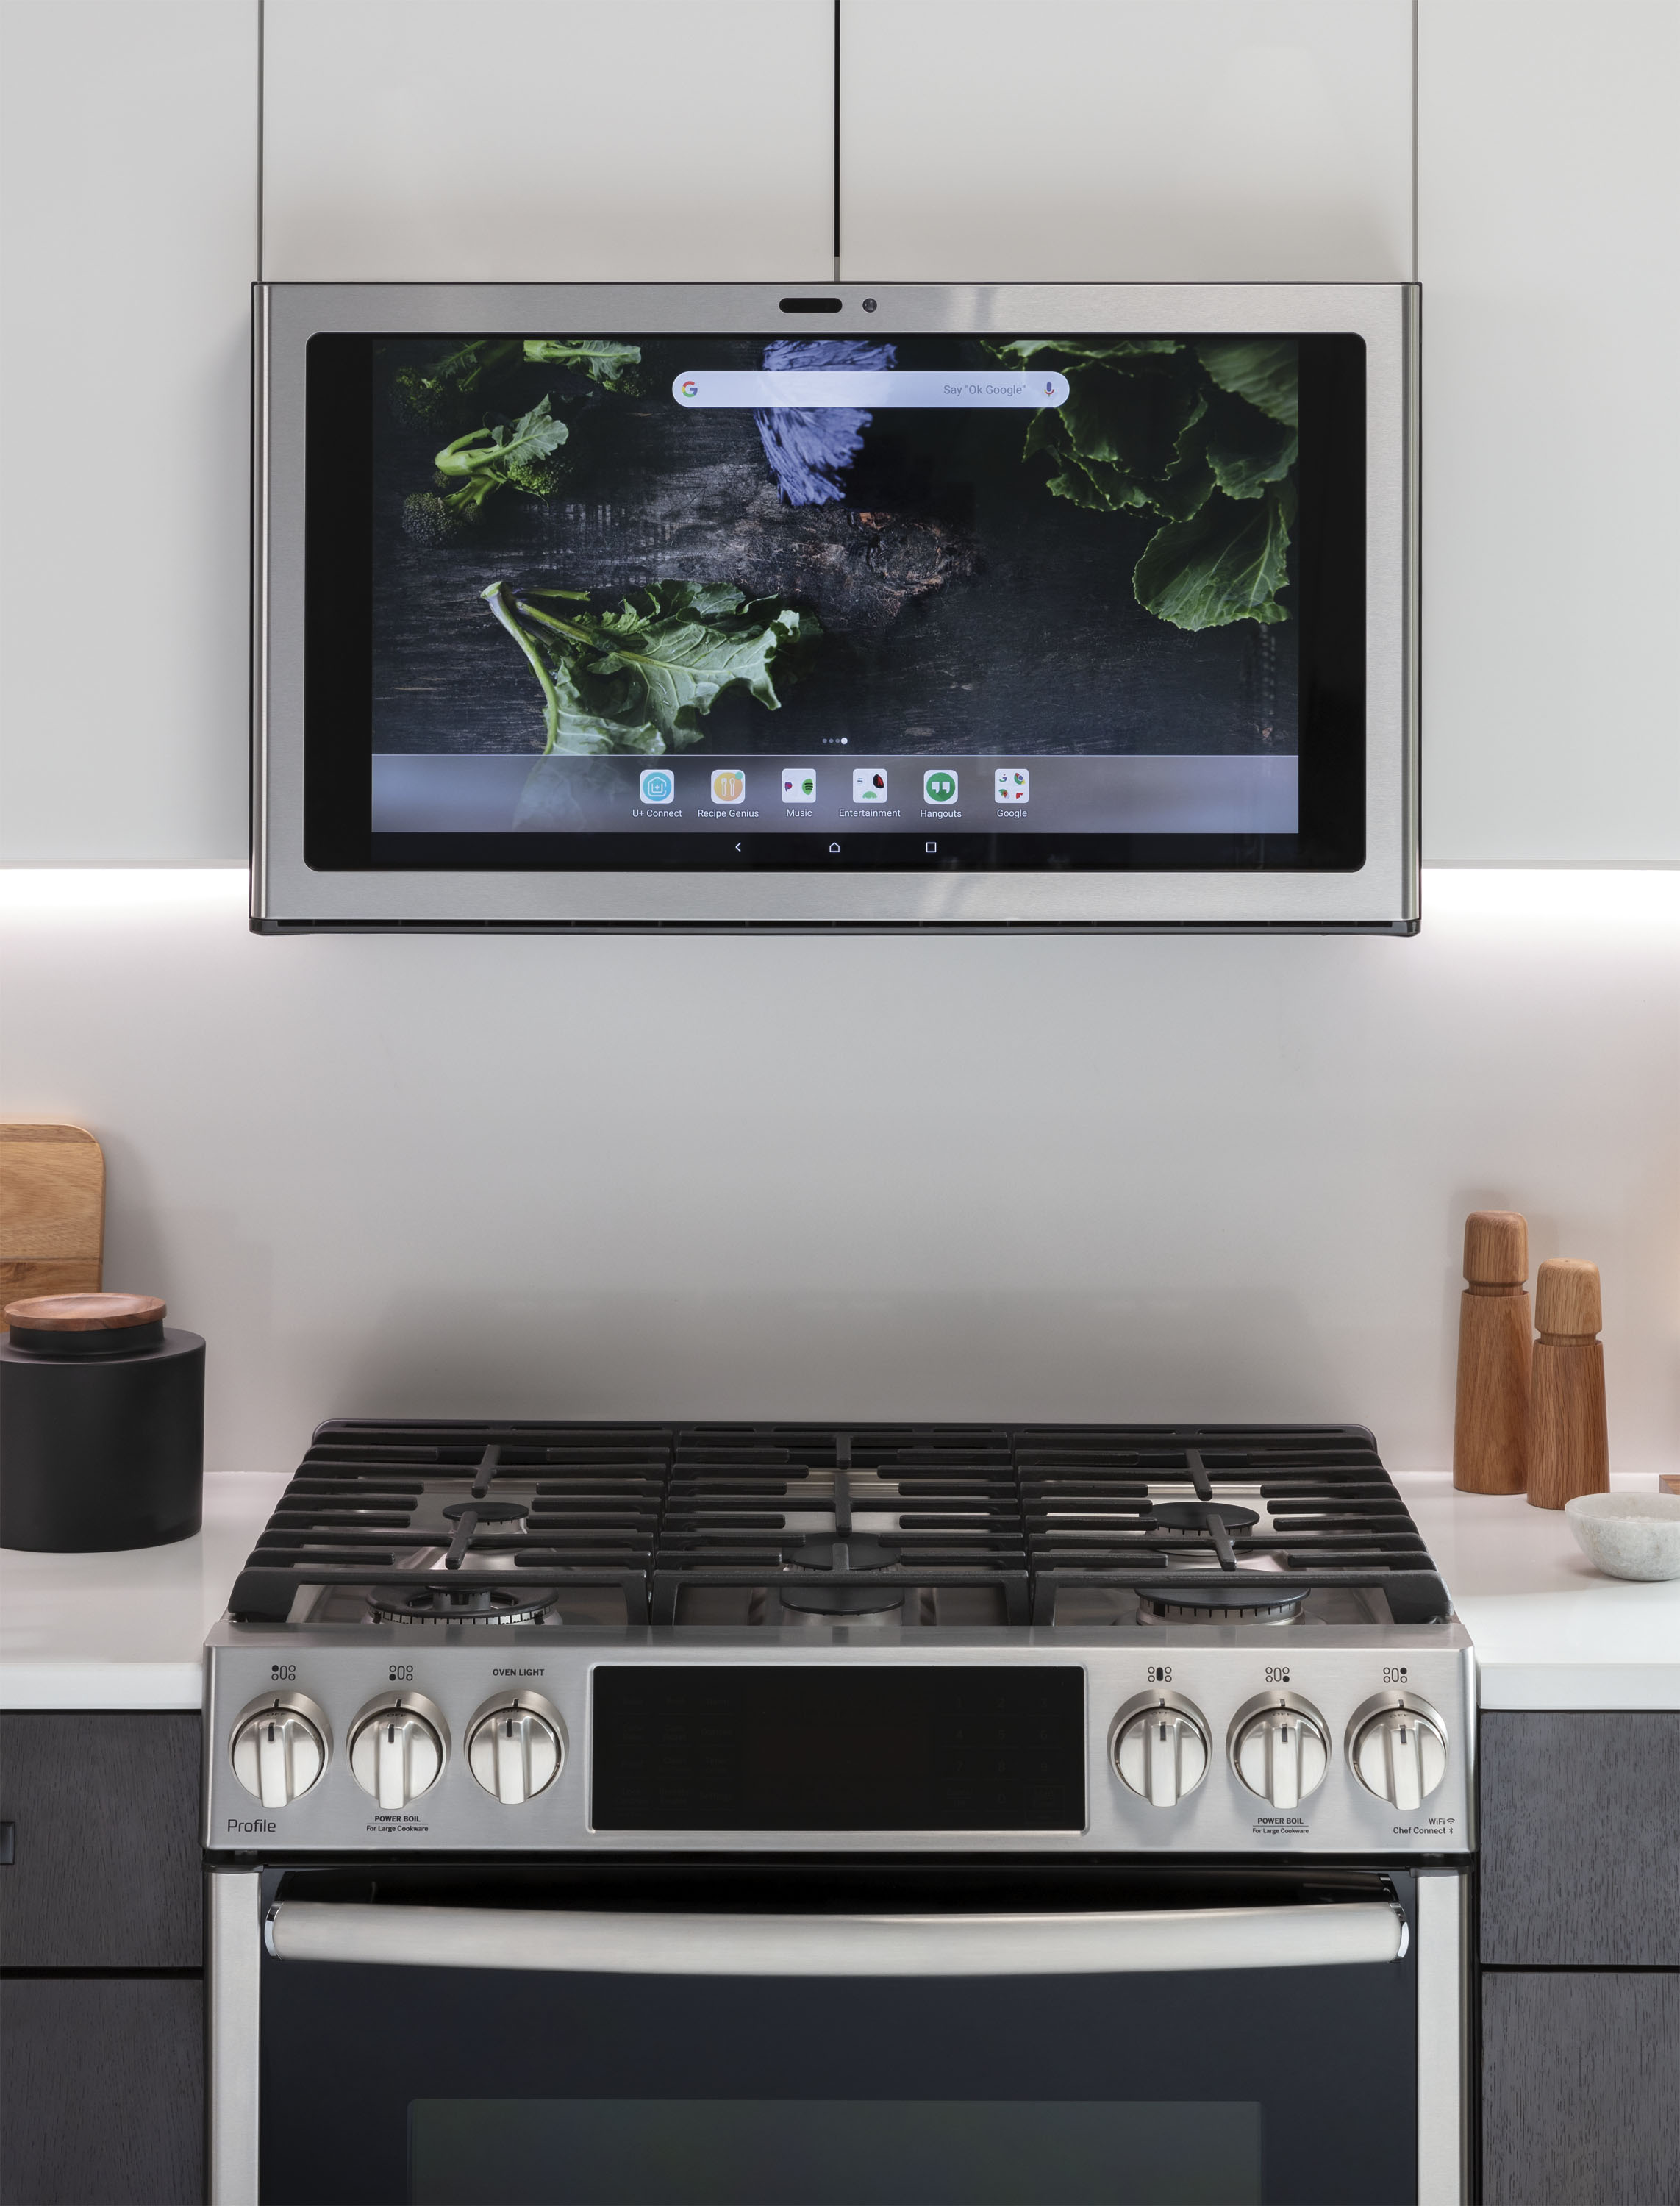 Ge Appliances Reveals The New Heartbeat Of The Connected